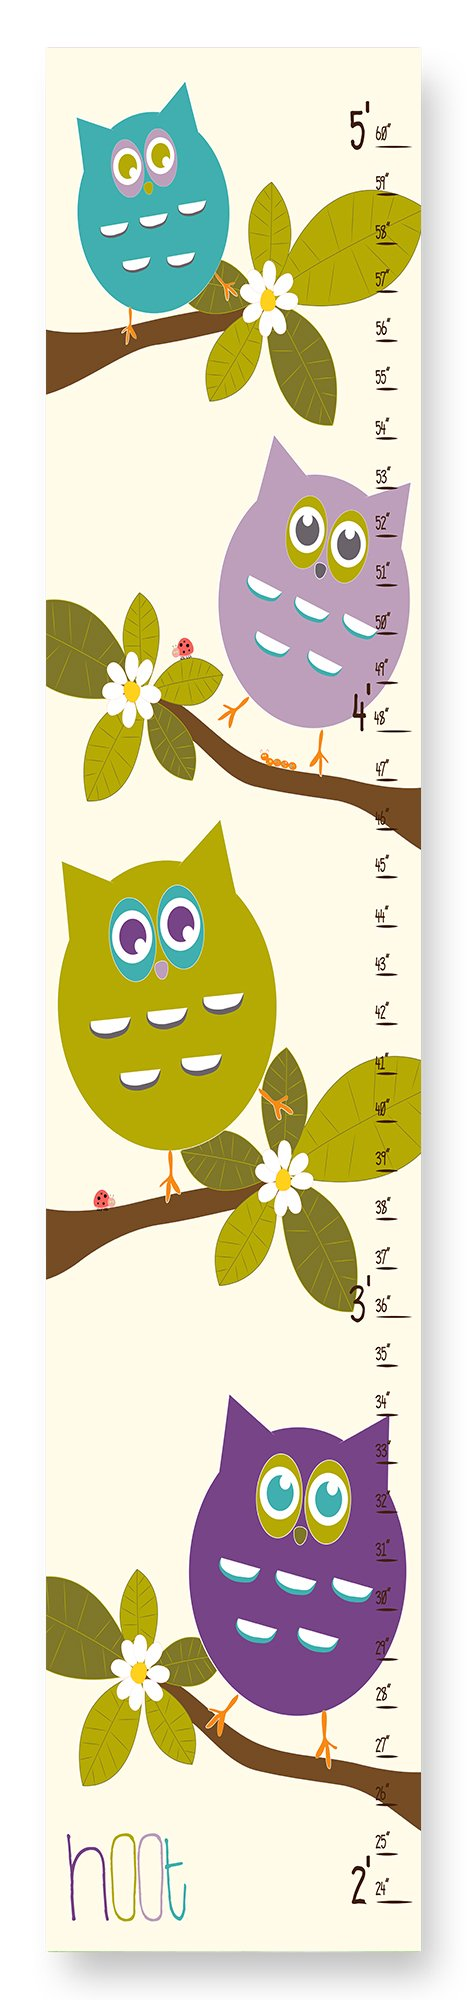 The Kids Room by Stupell Stupell Home Décor Cute Owls Whimsical Growth Chart, 7 x 0.5 x 39, Proudly Made in USA